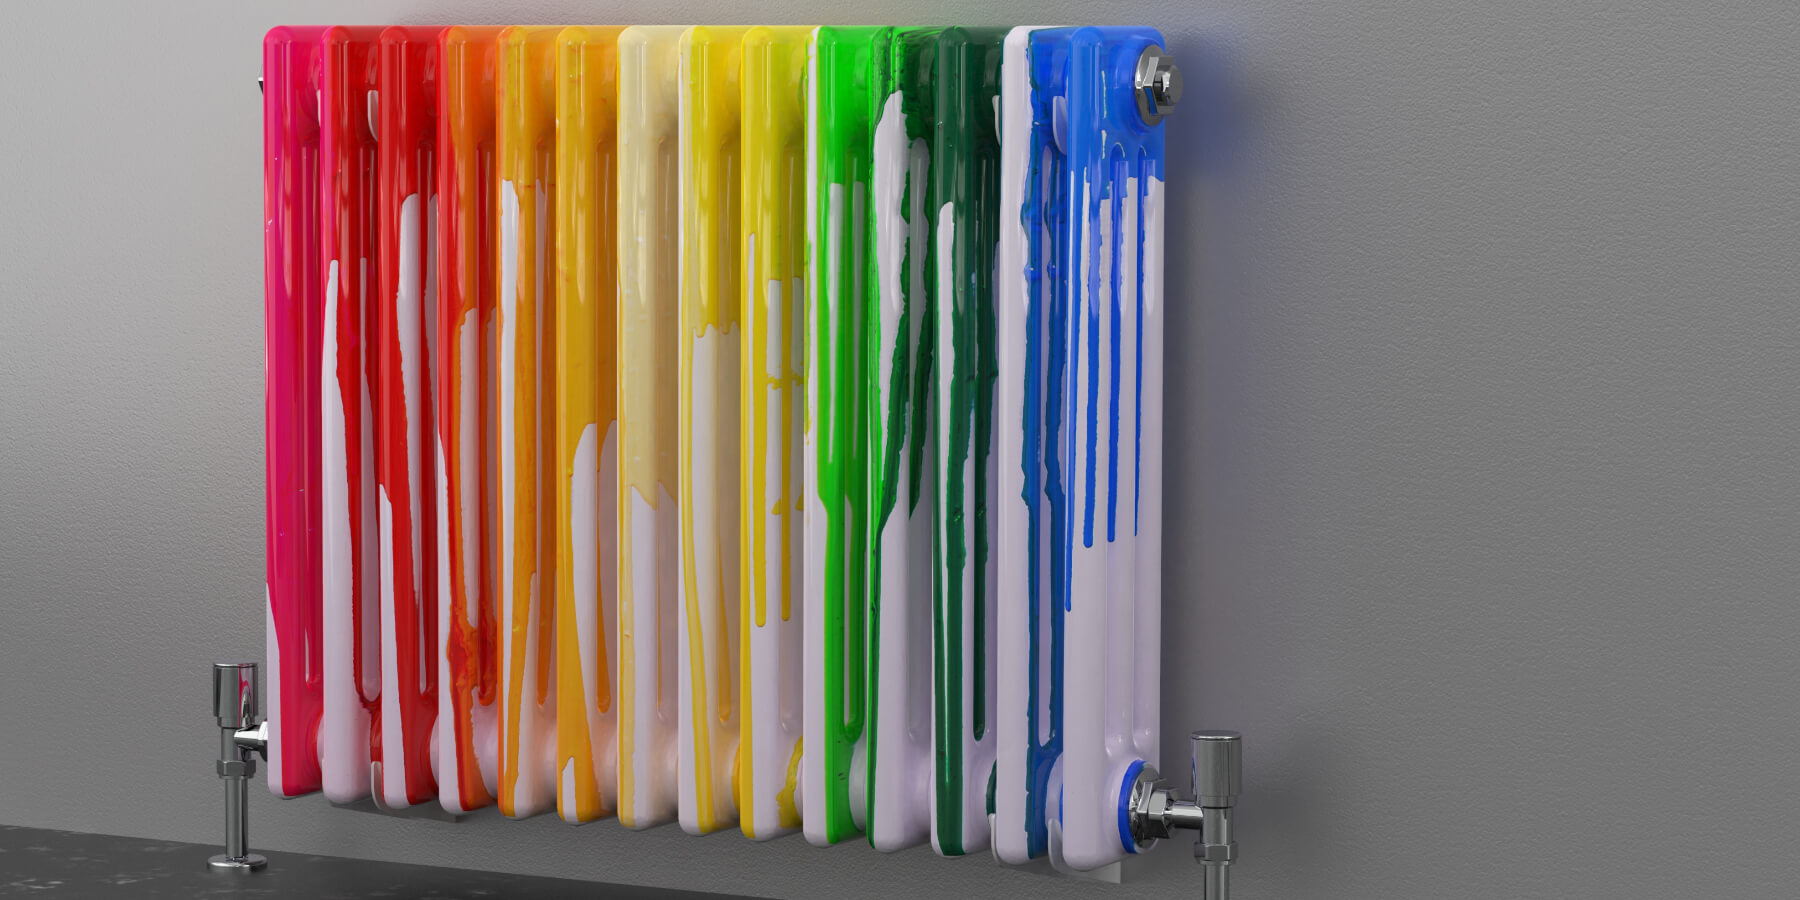 Painted radiators vs chrome radiators - Which is right for you?